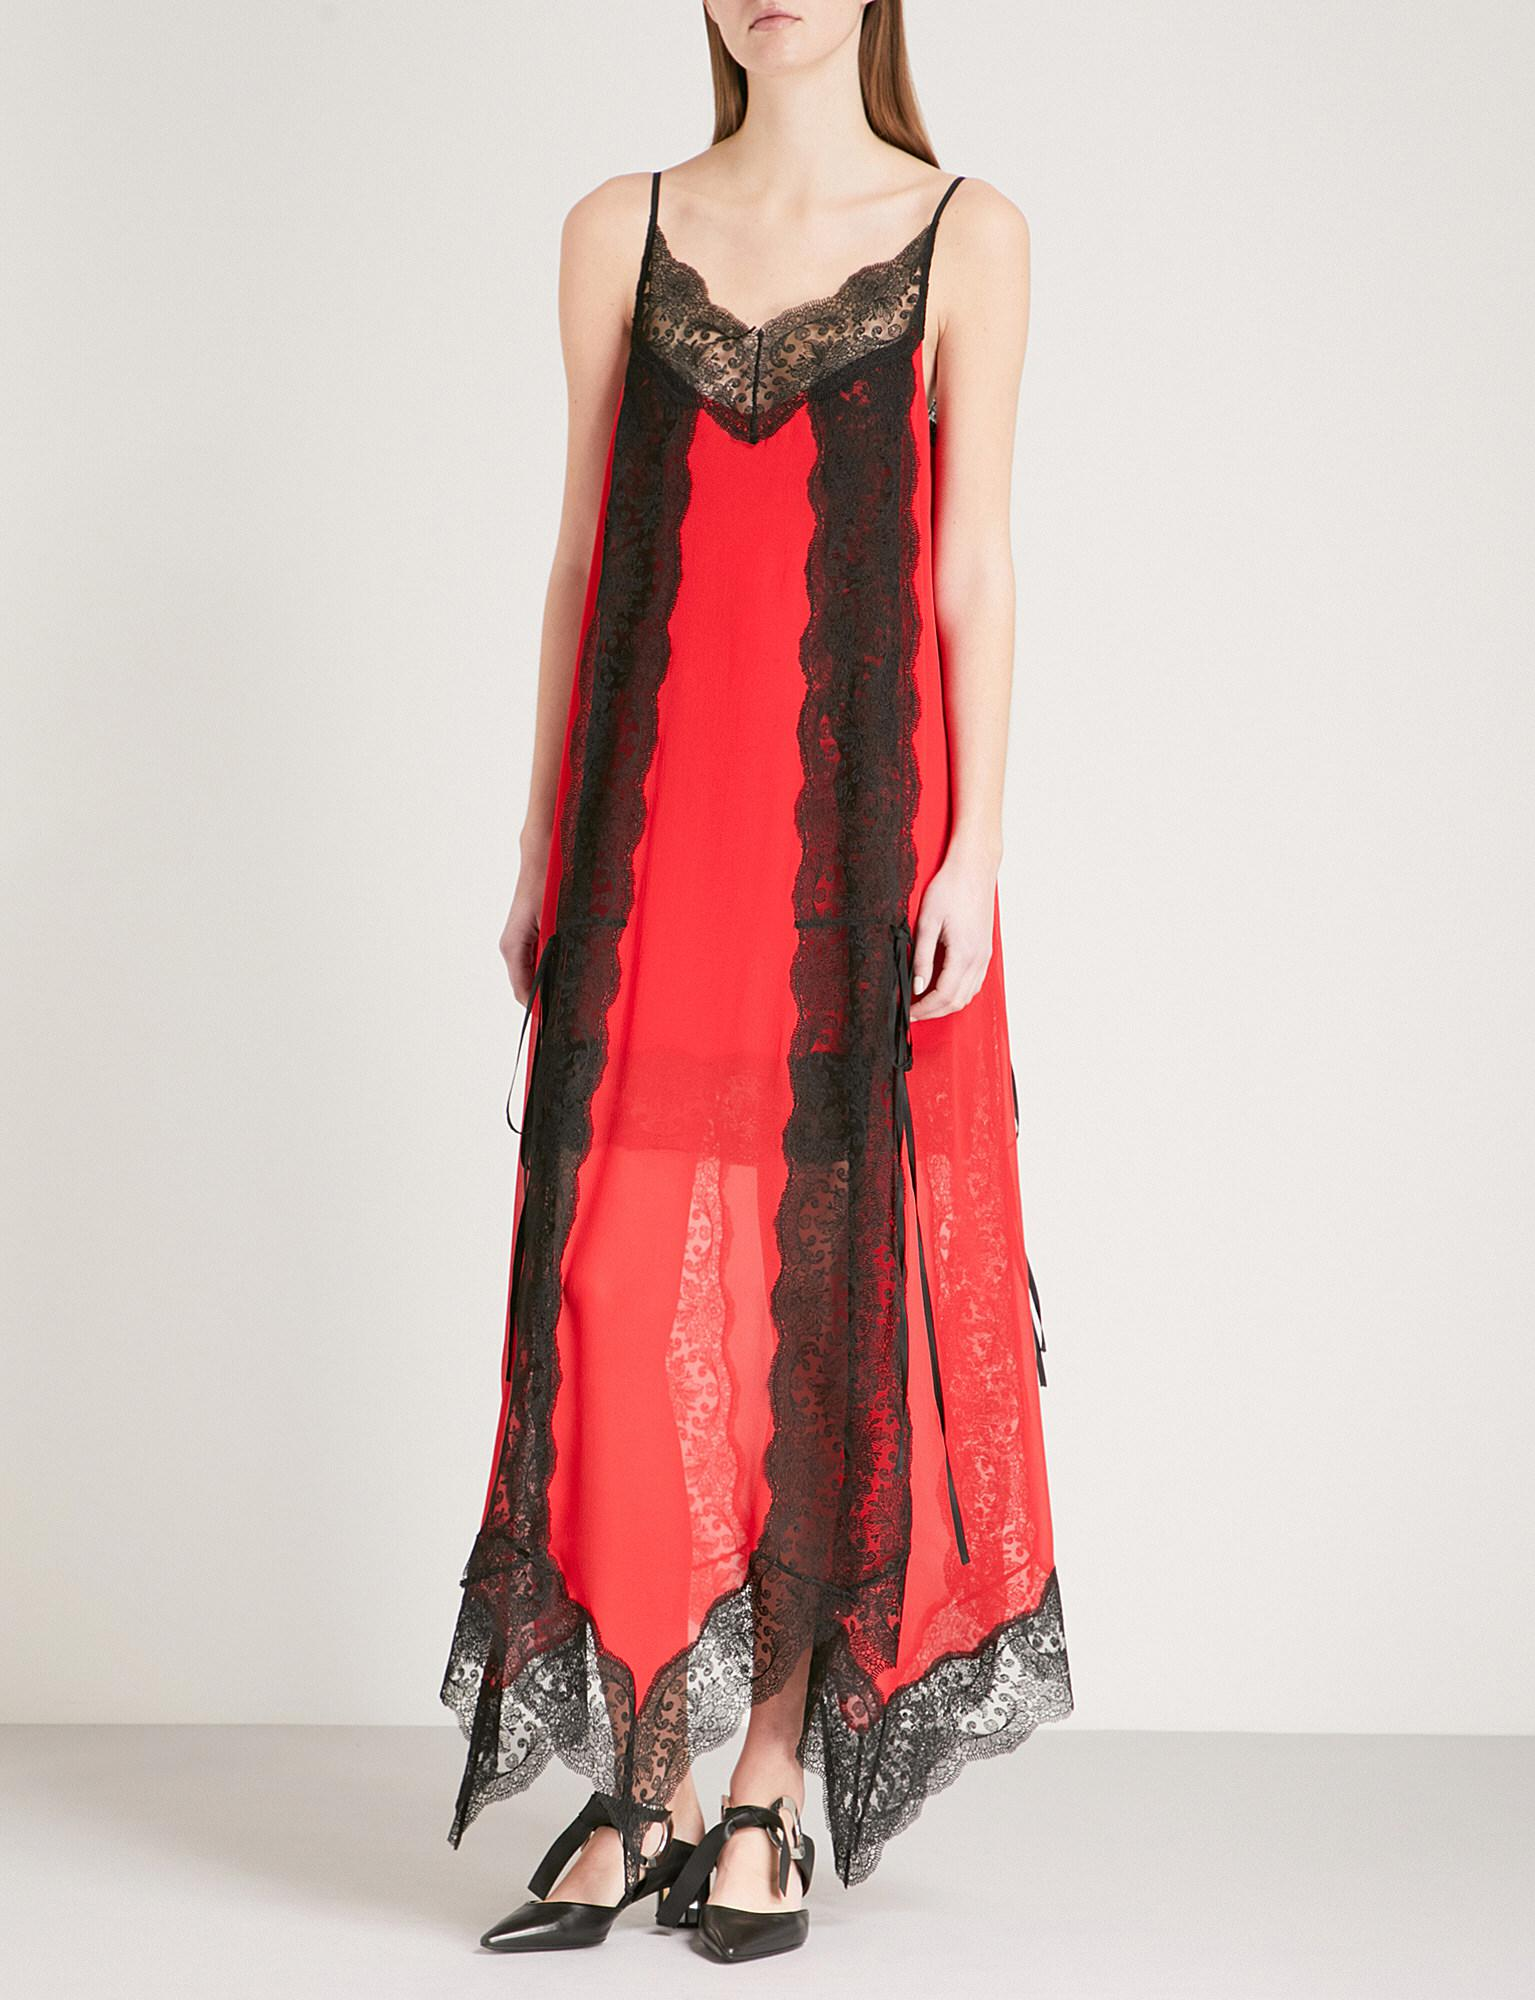 8d3cca5f3519 Christopher Kane Layered Lace-trim Silk-chiffon Dress in Red - Lyst